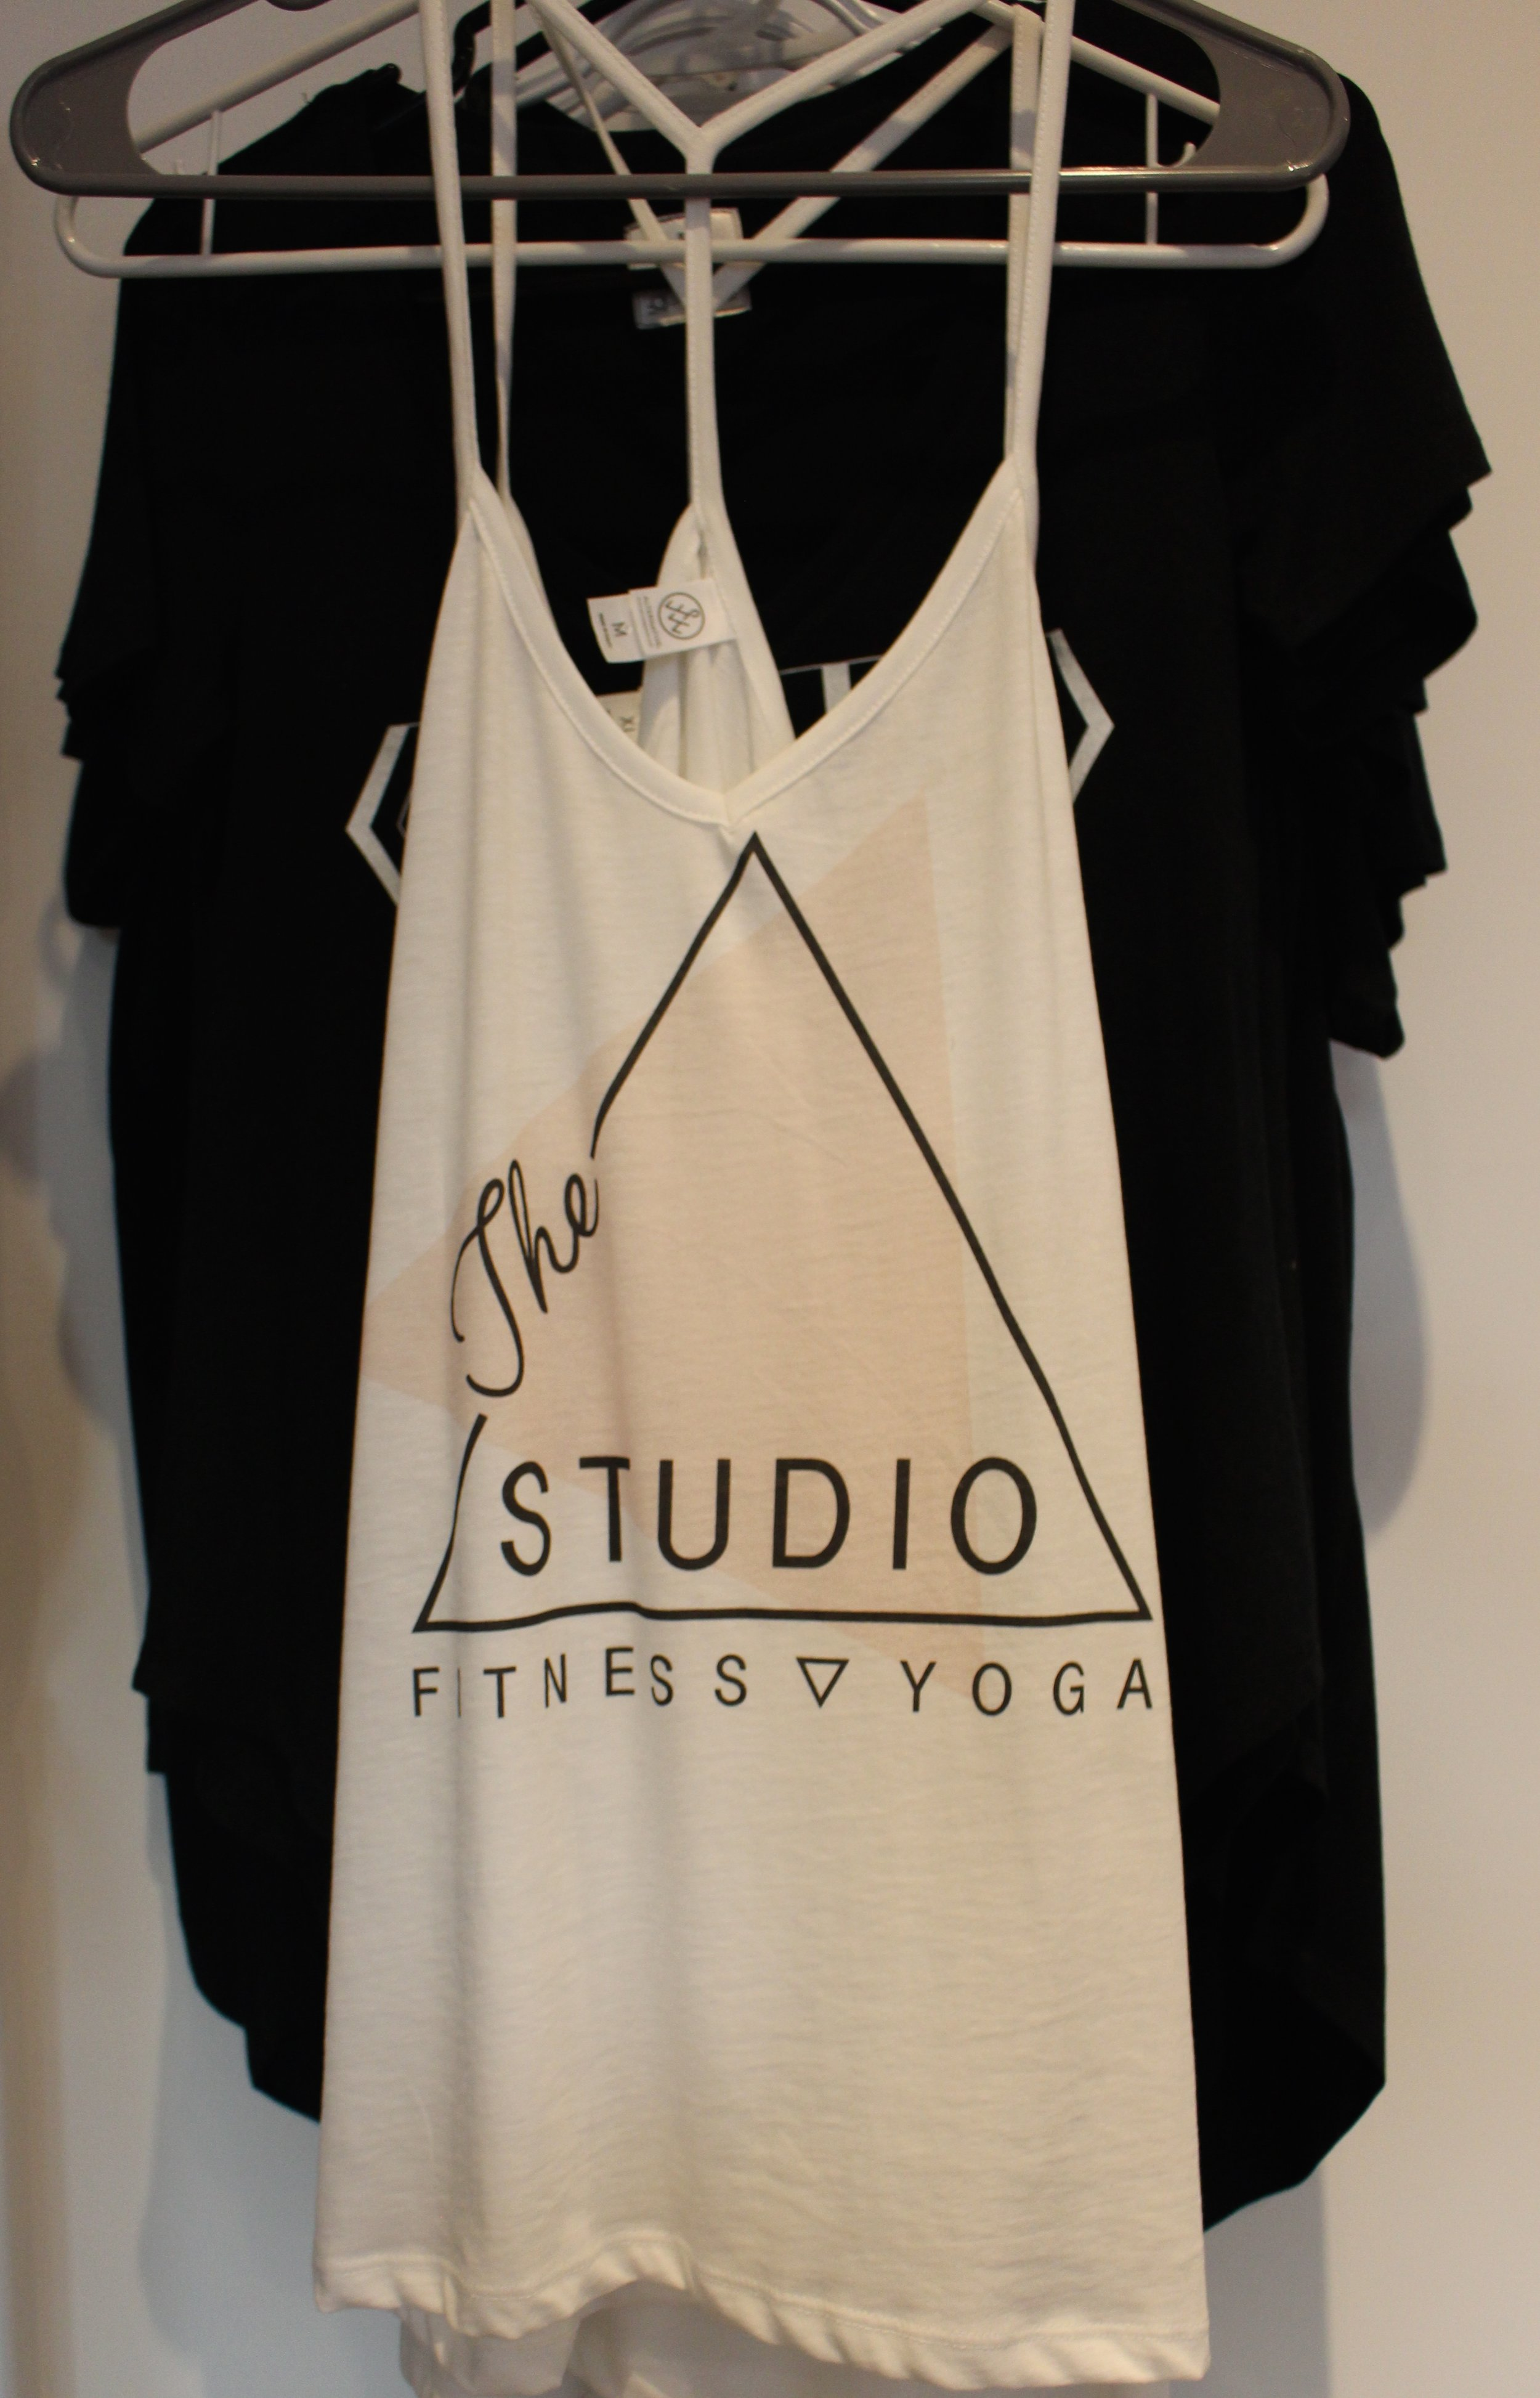 Some of Body by Kara and The Studio clothing line printed by Pina in Ucluelet